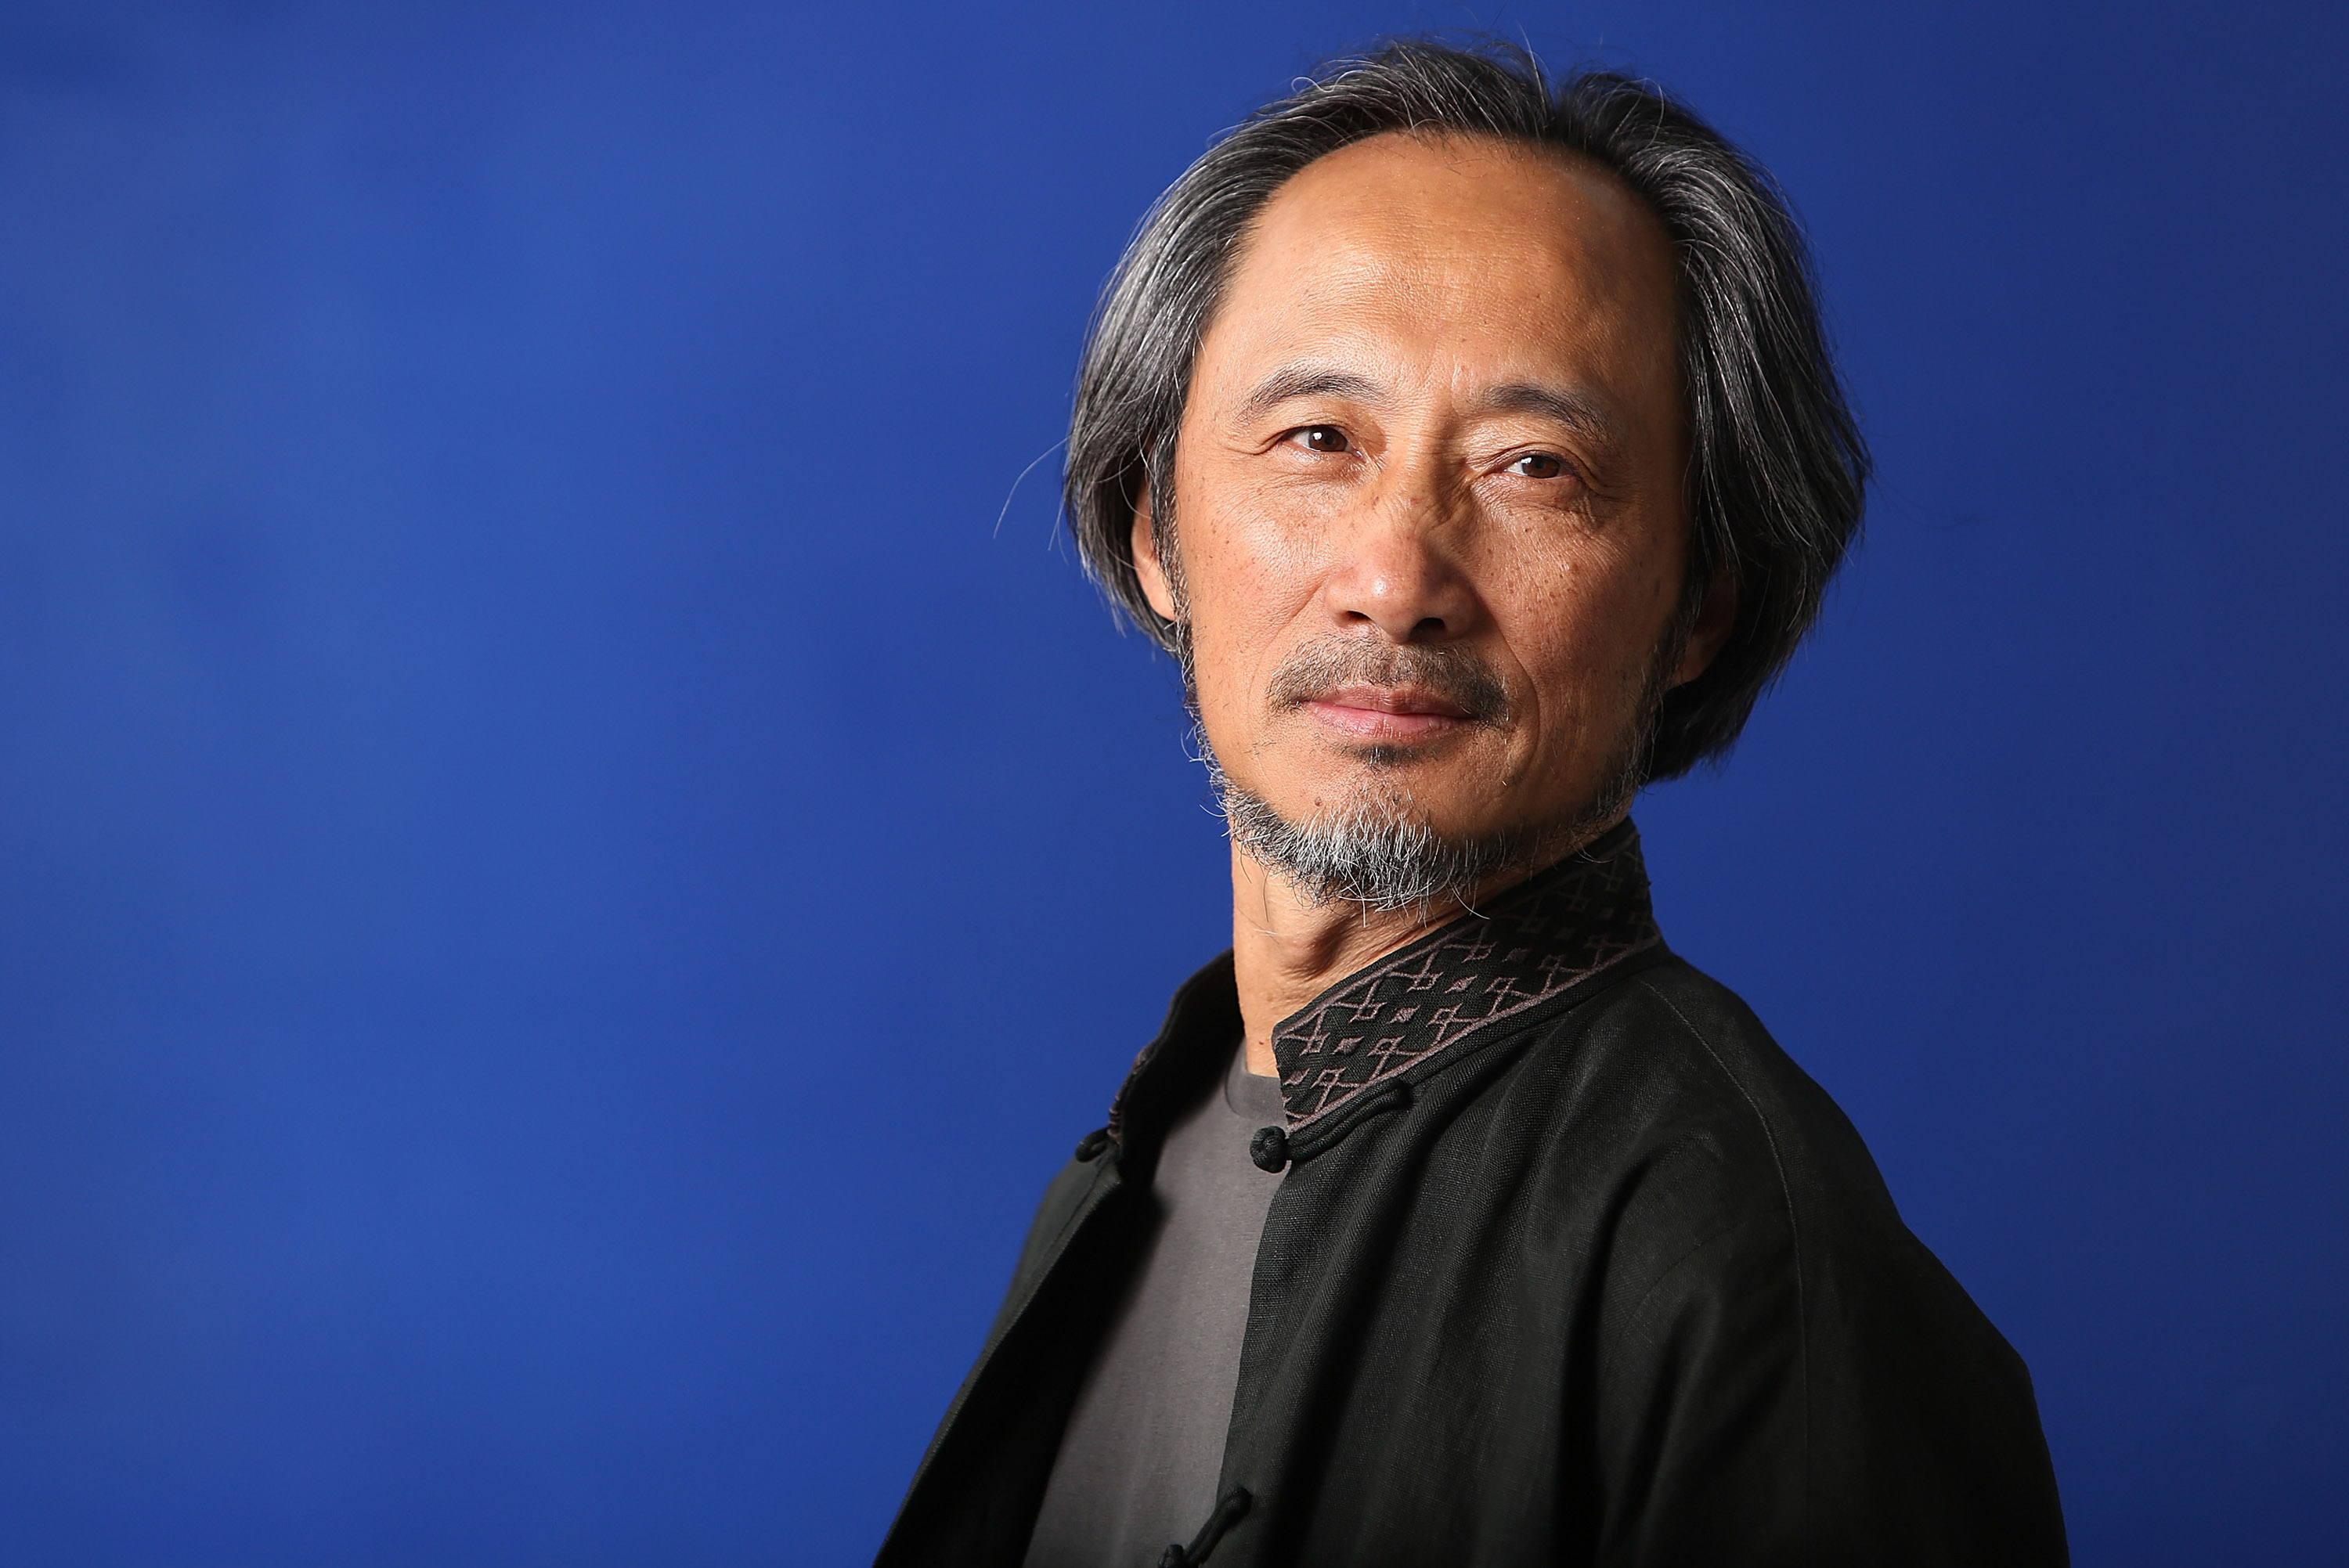 Ma Jian, Chinese-born author, and critic of the Chinese government, attends the 30th Edinburgh International Book Festival in Edinburgh, Scotland on on Aug. 12, 2013.